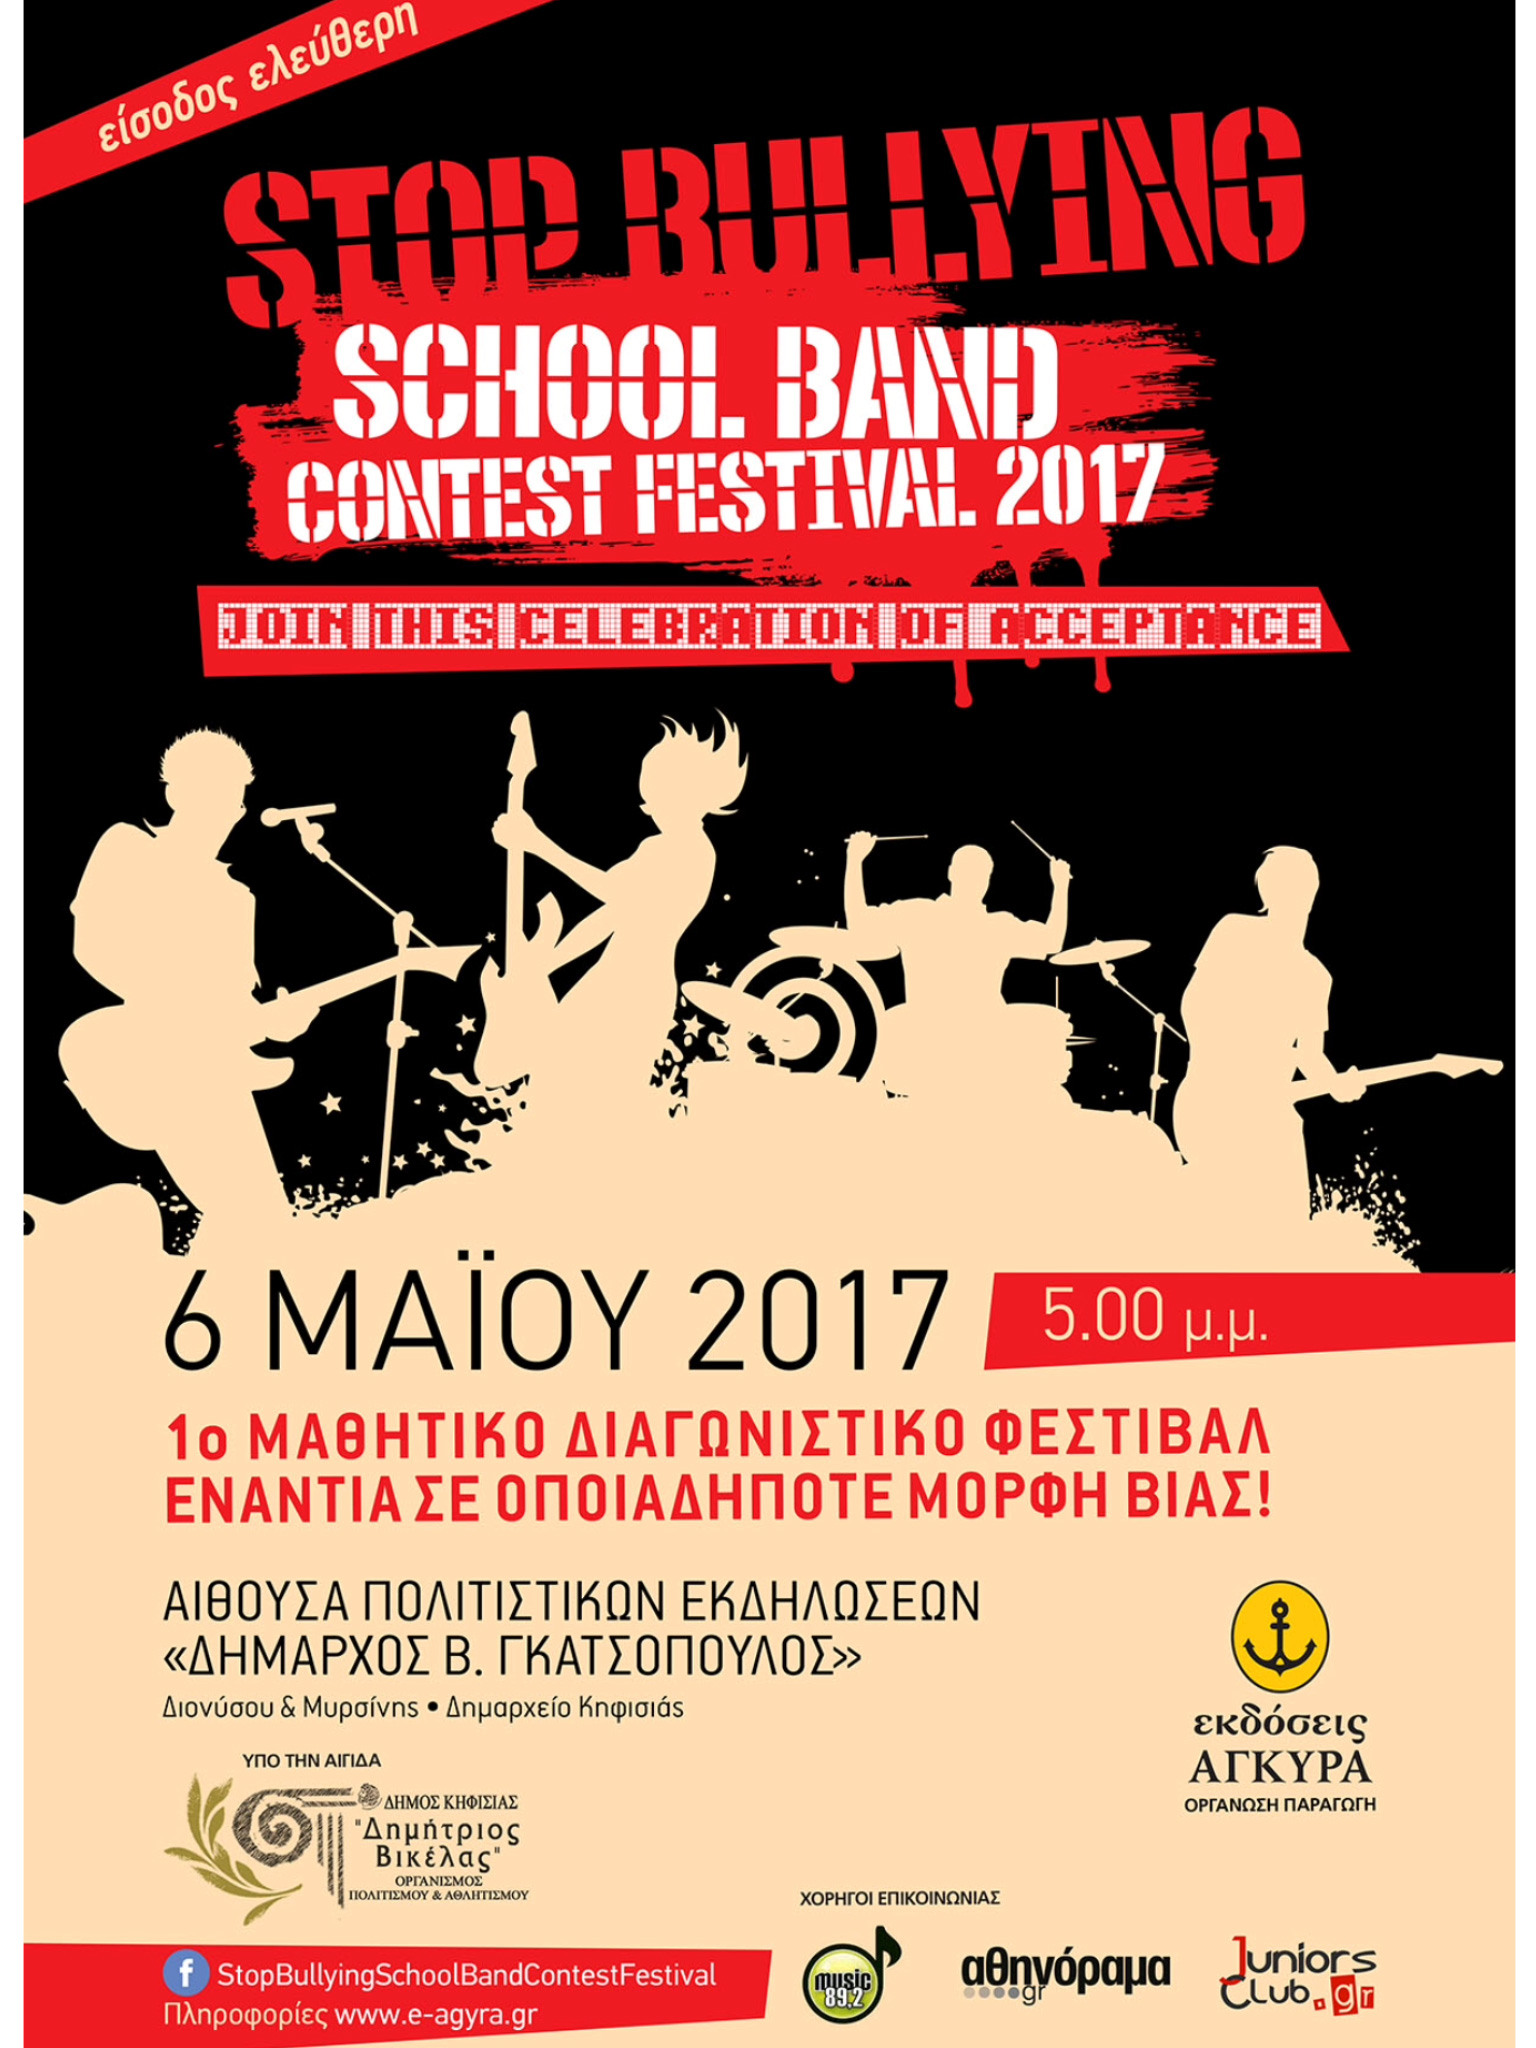 Stop Bullying School band Contest Festival 2017 (Δελτίο Τύπου)